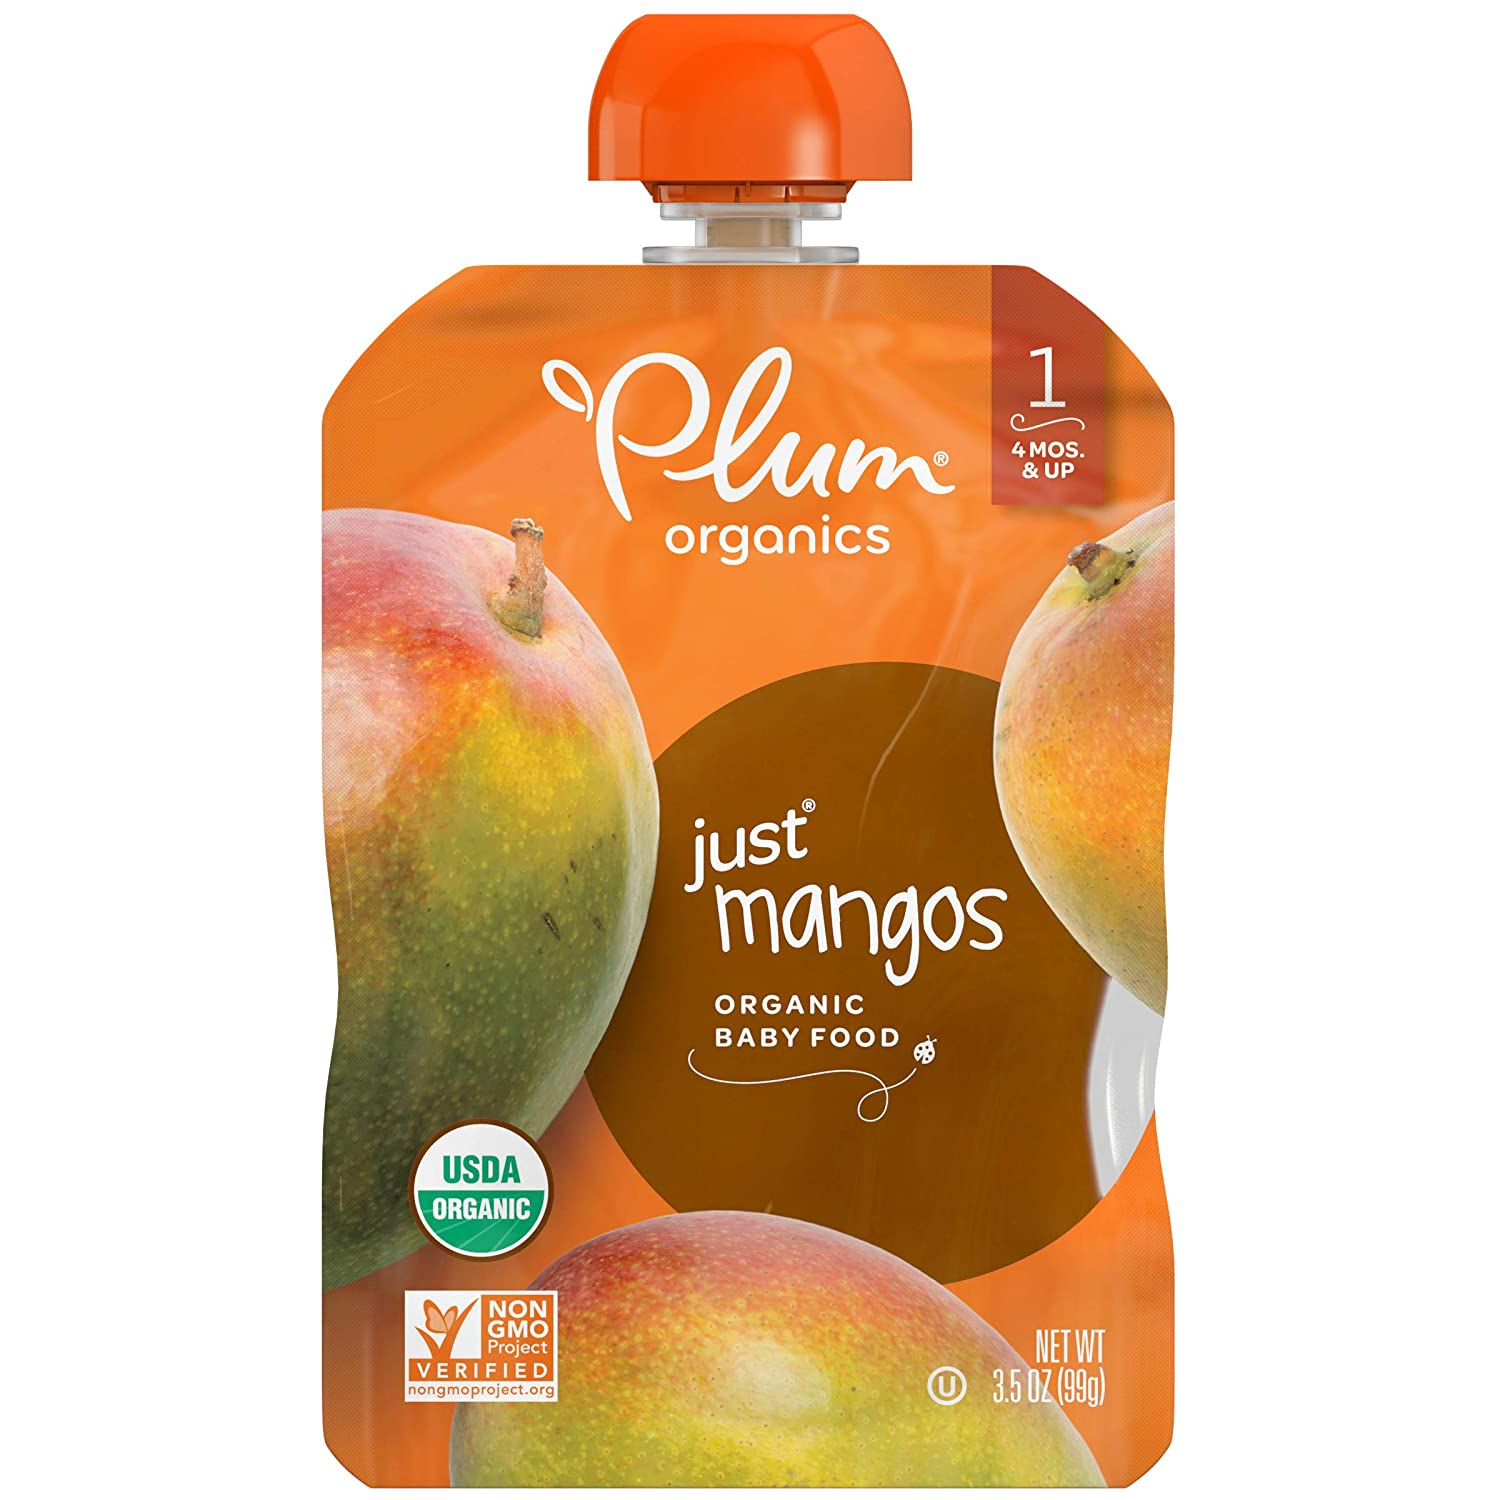 Plum Organics Stage 1 Organic Baby Food, Mango Puree, 3.5 Ounce Pouch, Pack of 6